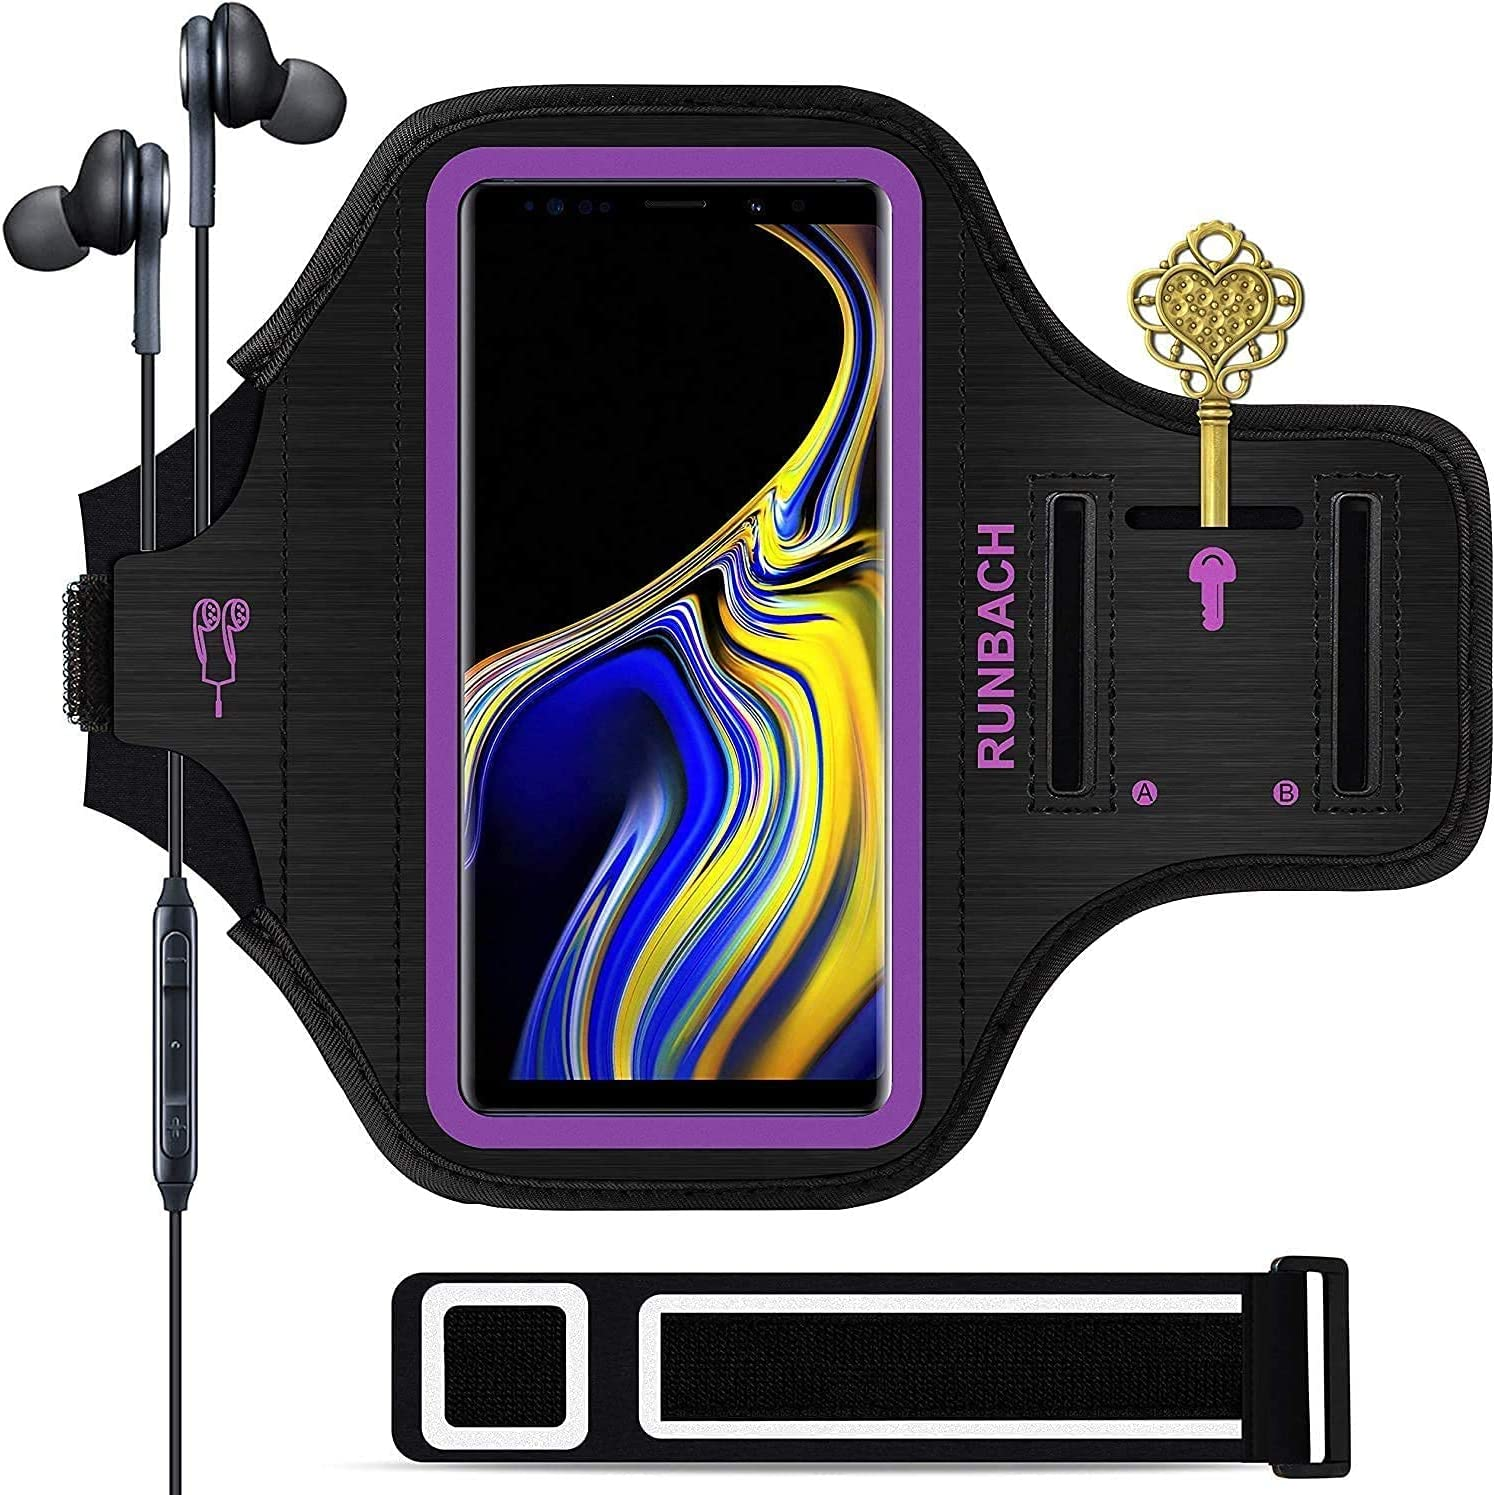 Galaxy Note 20/10+/9/8 Armband,RUNBACH Sweatproof Running Exercise Cellphone Sportband Bag with Fingerprint Touch and Card Slot for Samsung Galaxy Note 20/Note 10+/Note 9/Note 8(Purple)